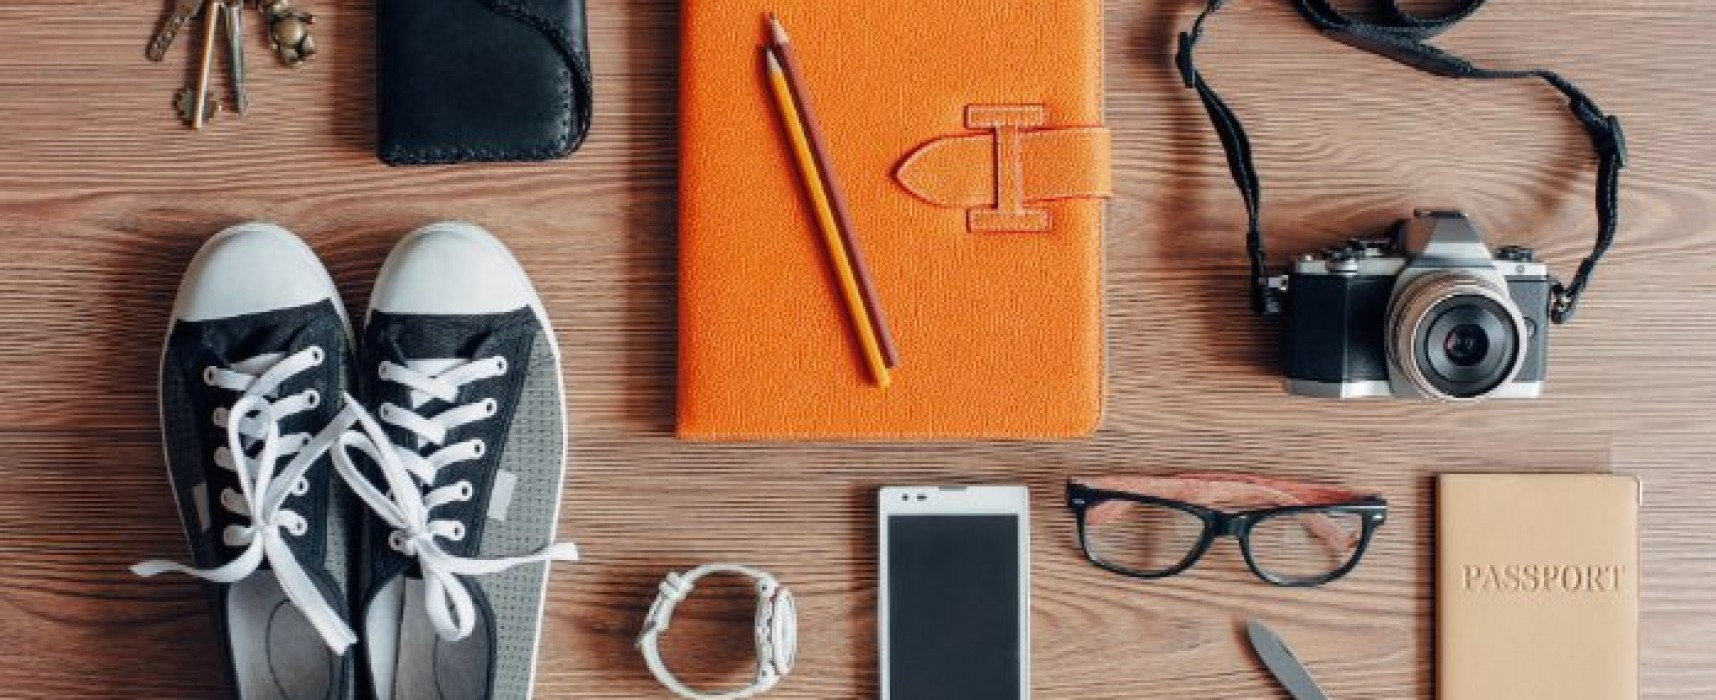 Essential Must-Have Gadgets for the Real Travel Geek